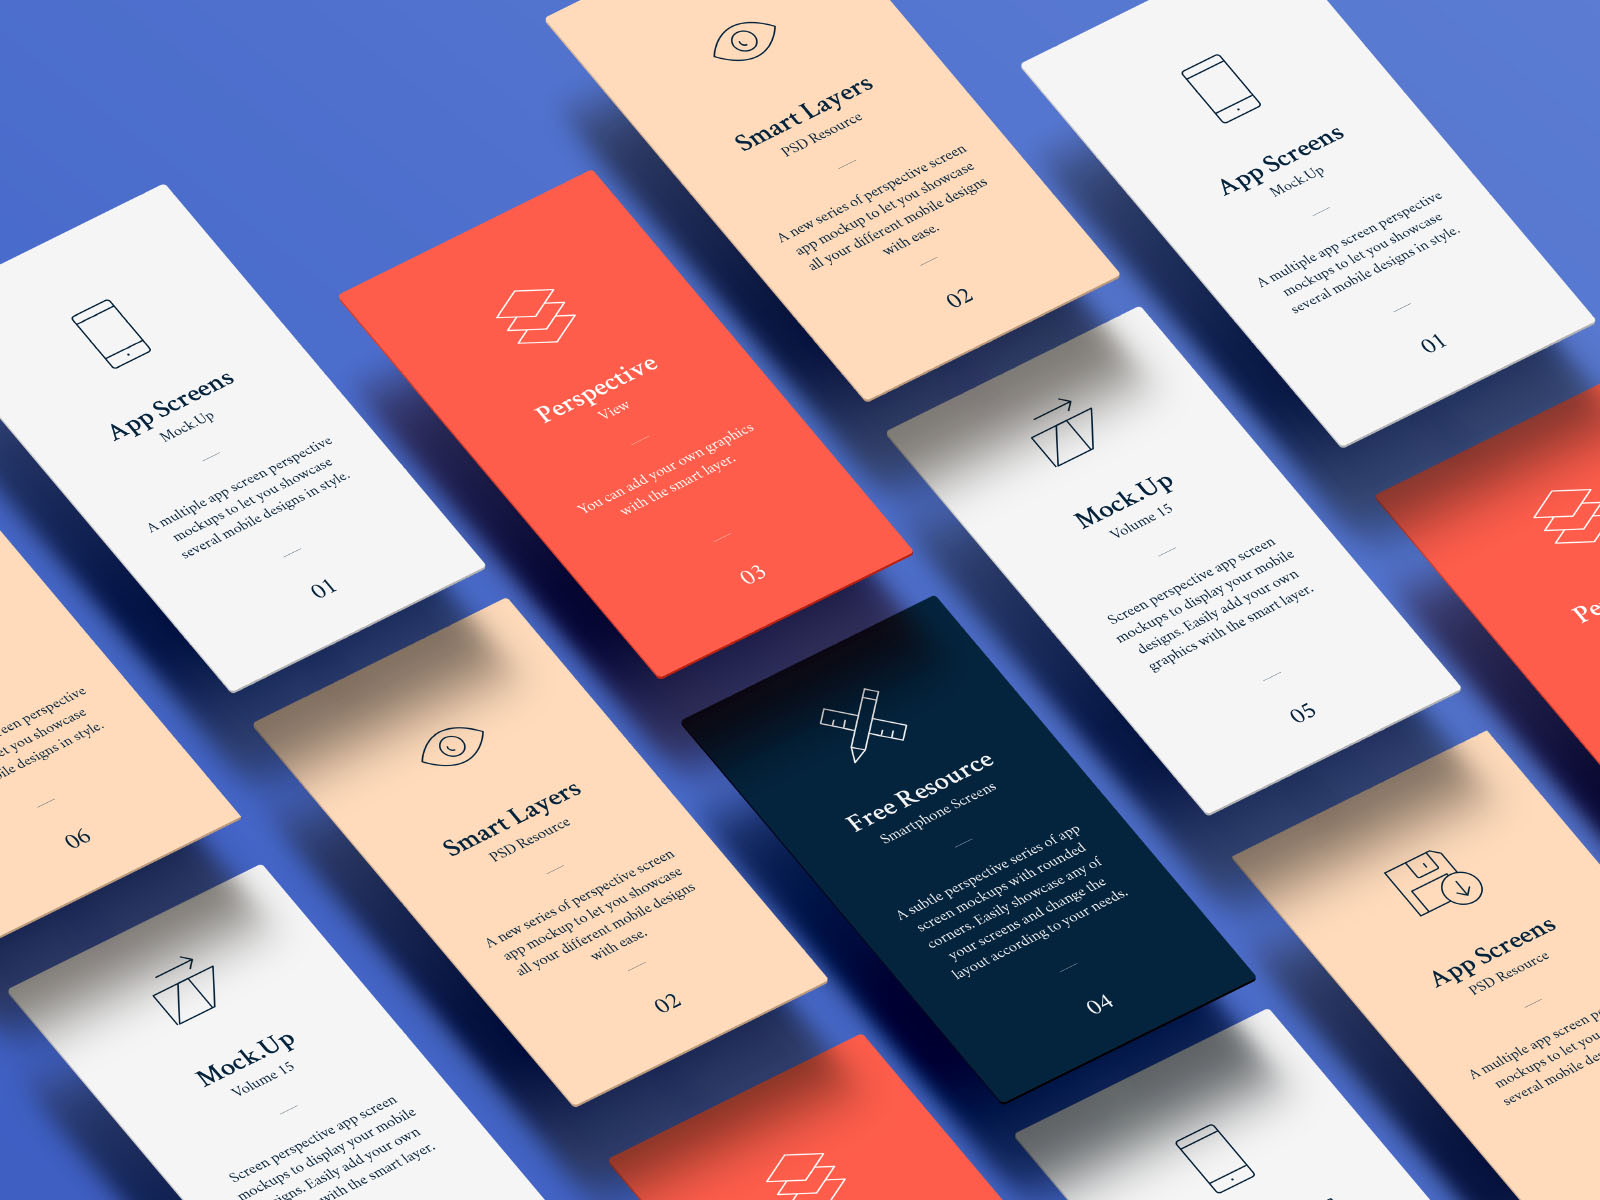 Iphone Wallpaper Psd Template Multi Screen Perspective Floating App Mockups Psd